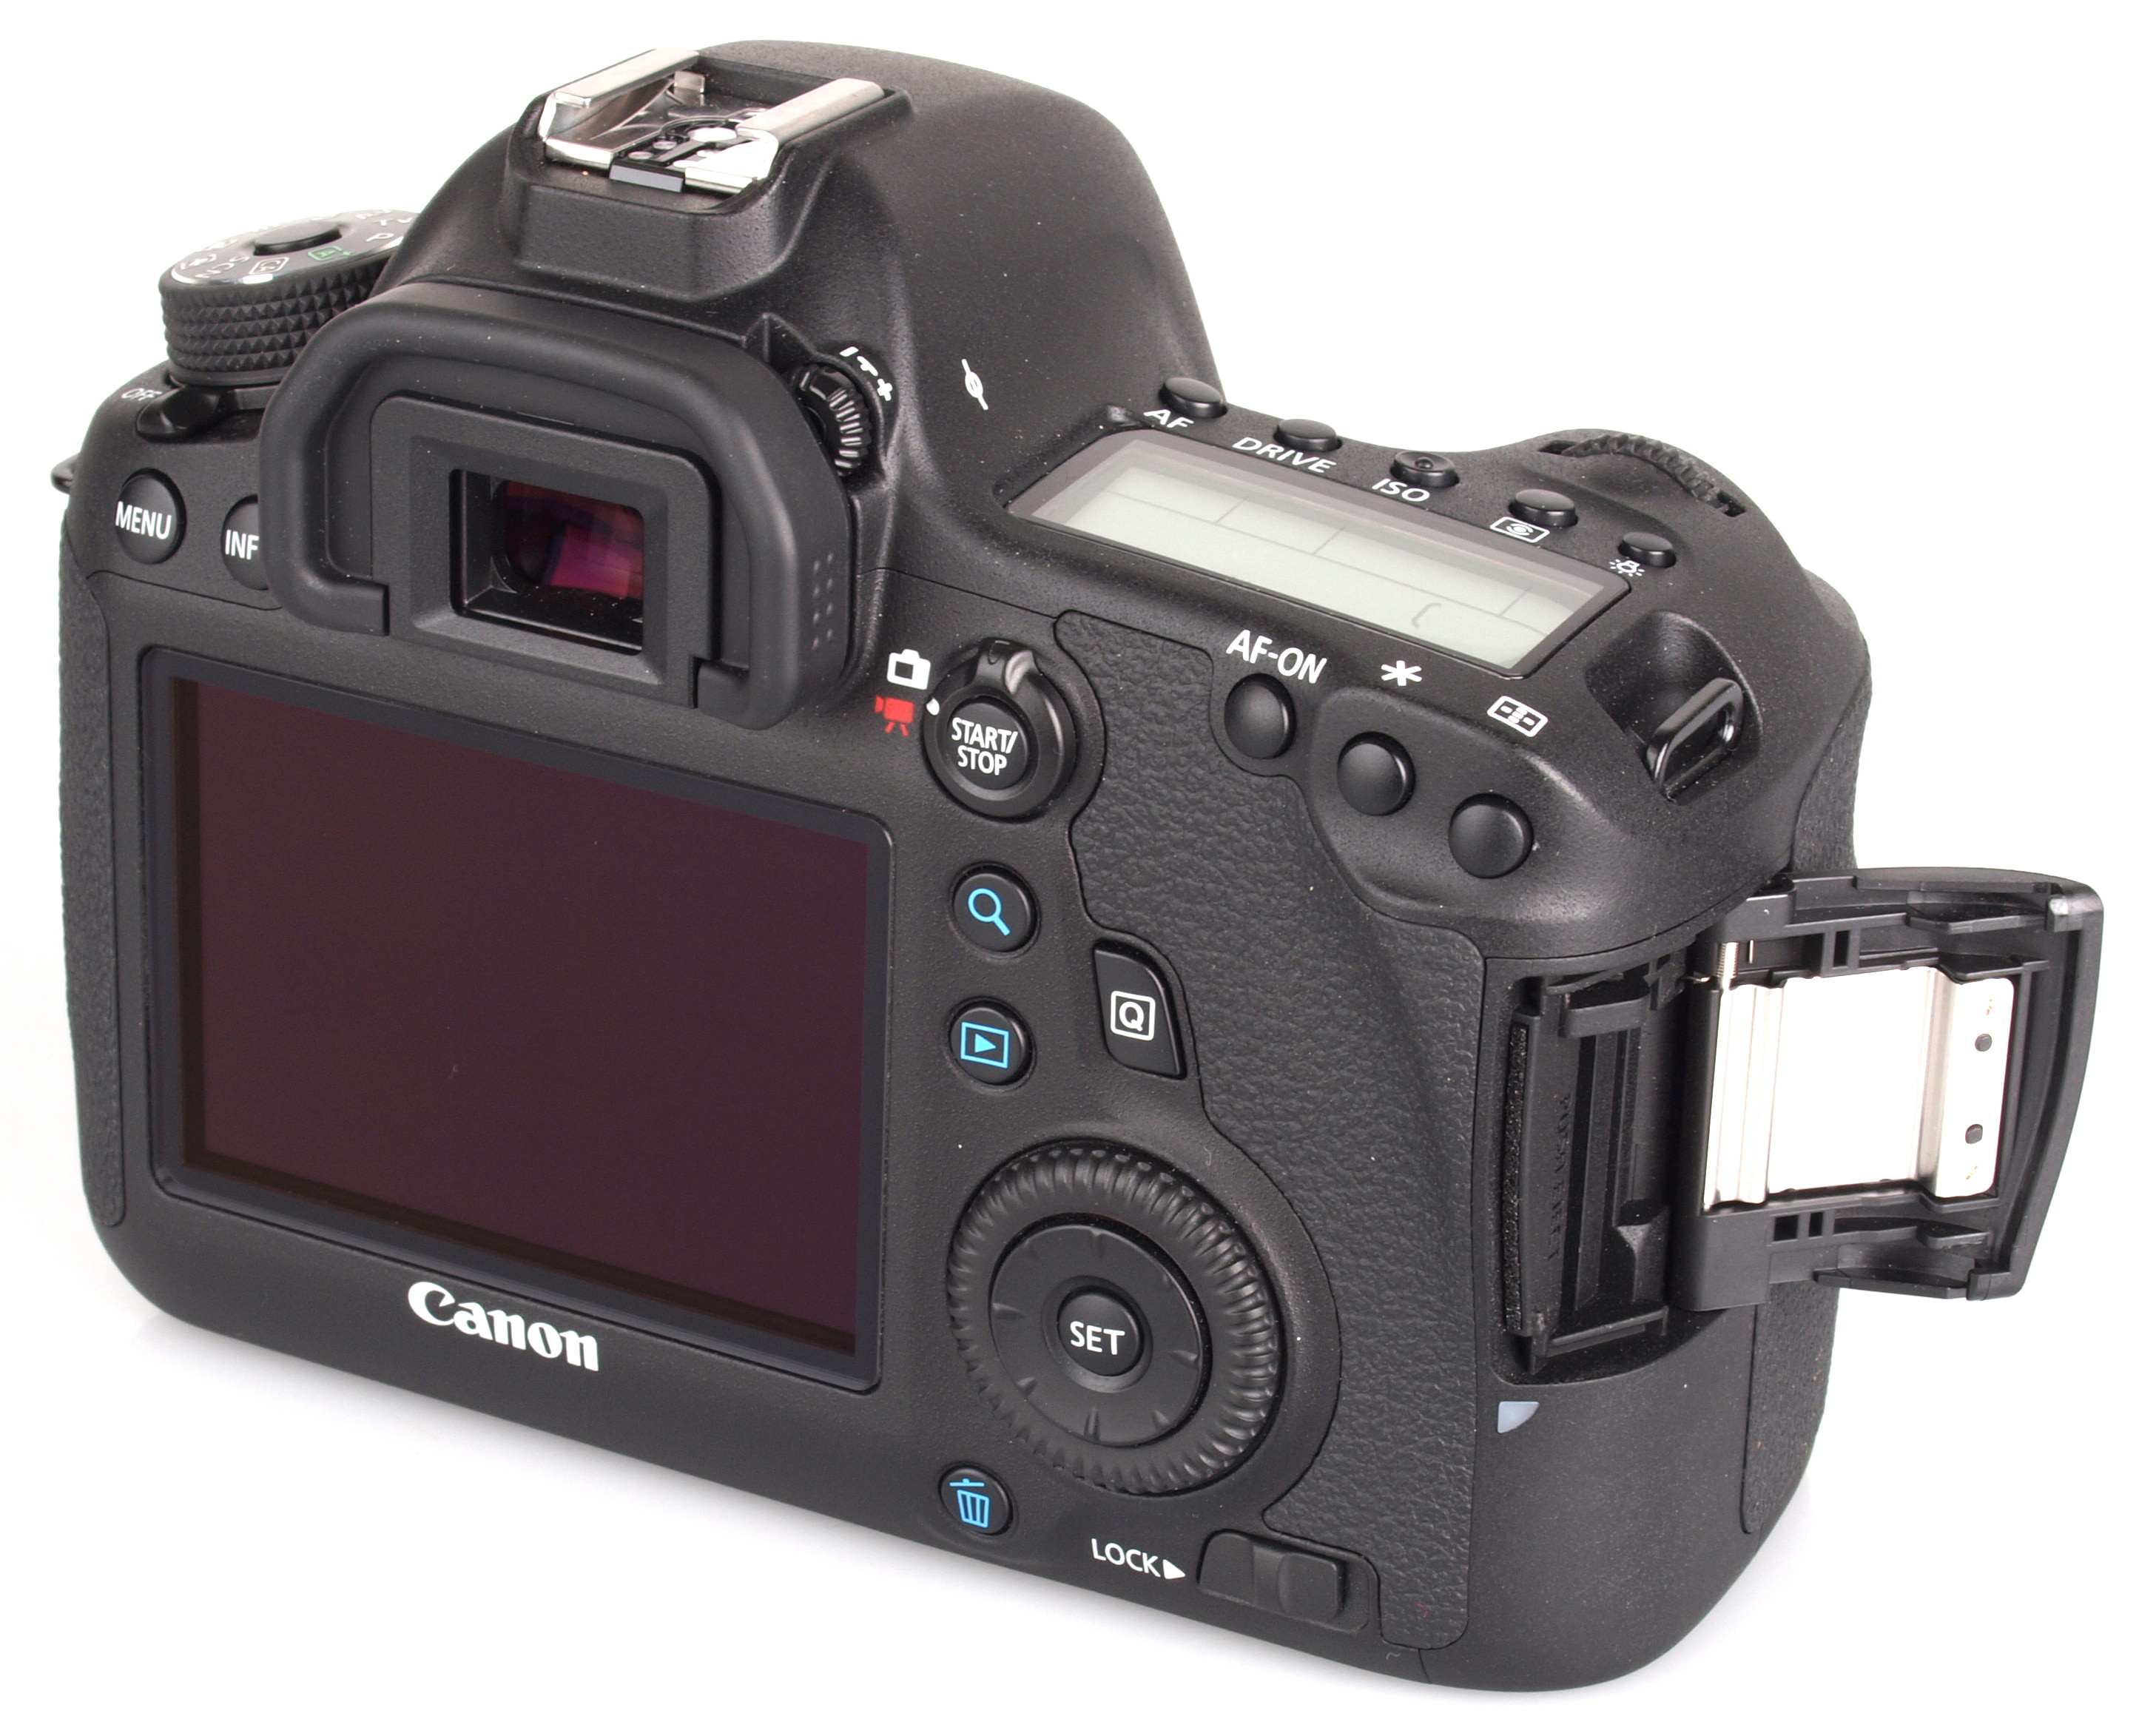 https://www.ephotozine.com/articles/canon-eos-6d-digital-slr-review-21092/images/highres-canon-eos-6d-dslr-large-10_1358268777.jpg